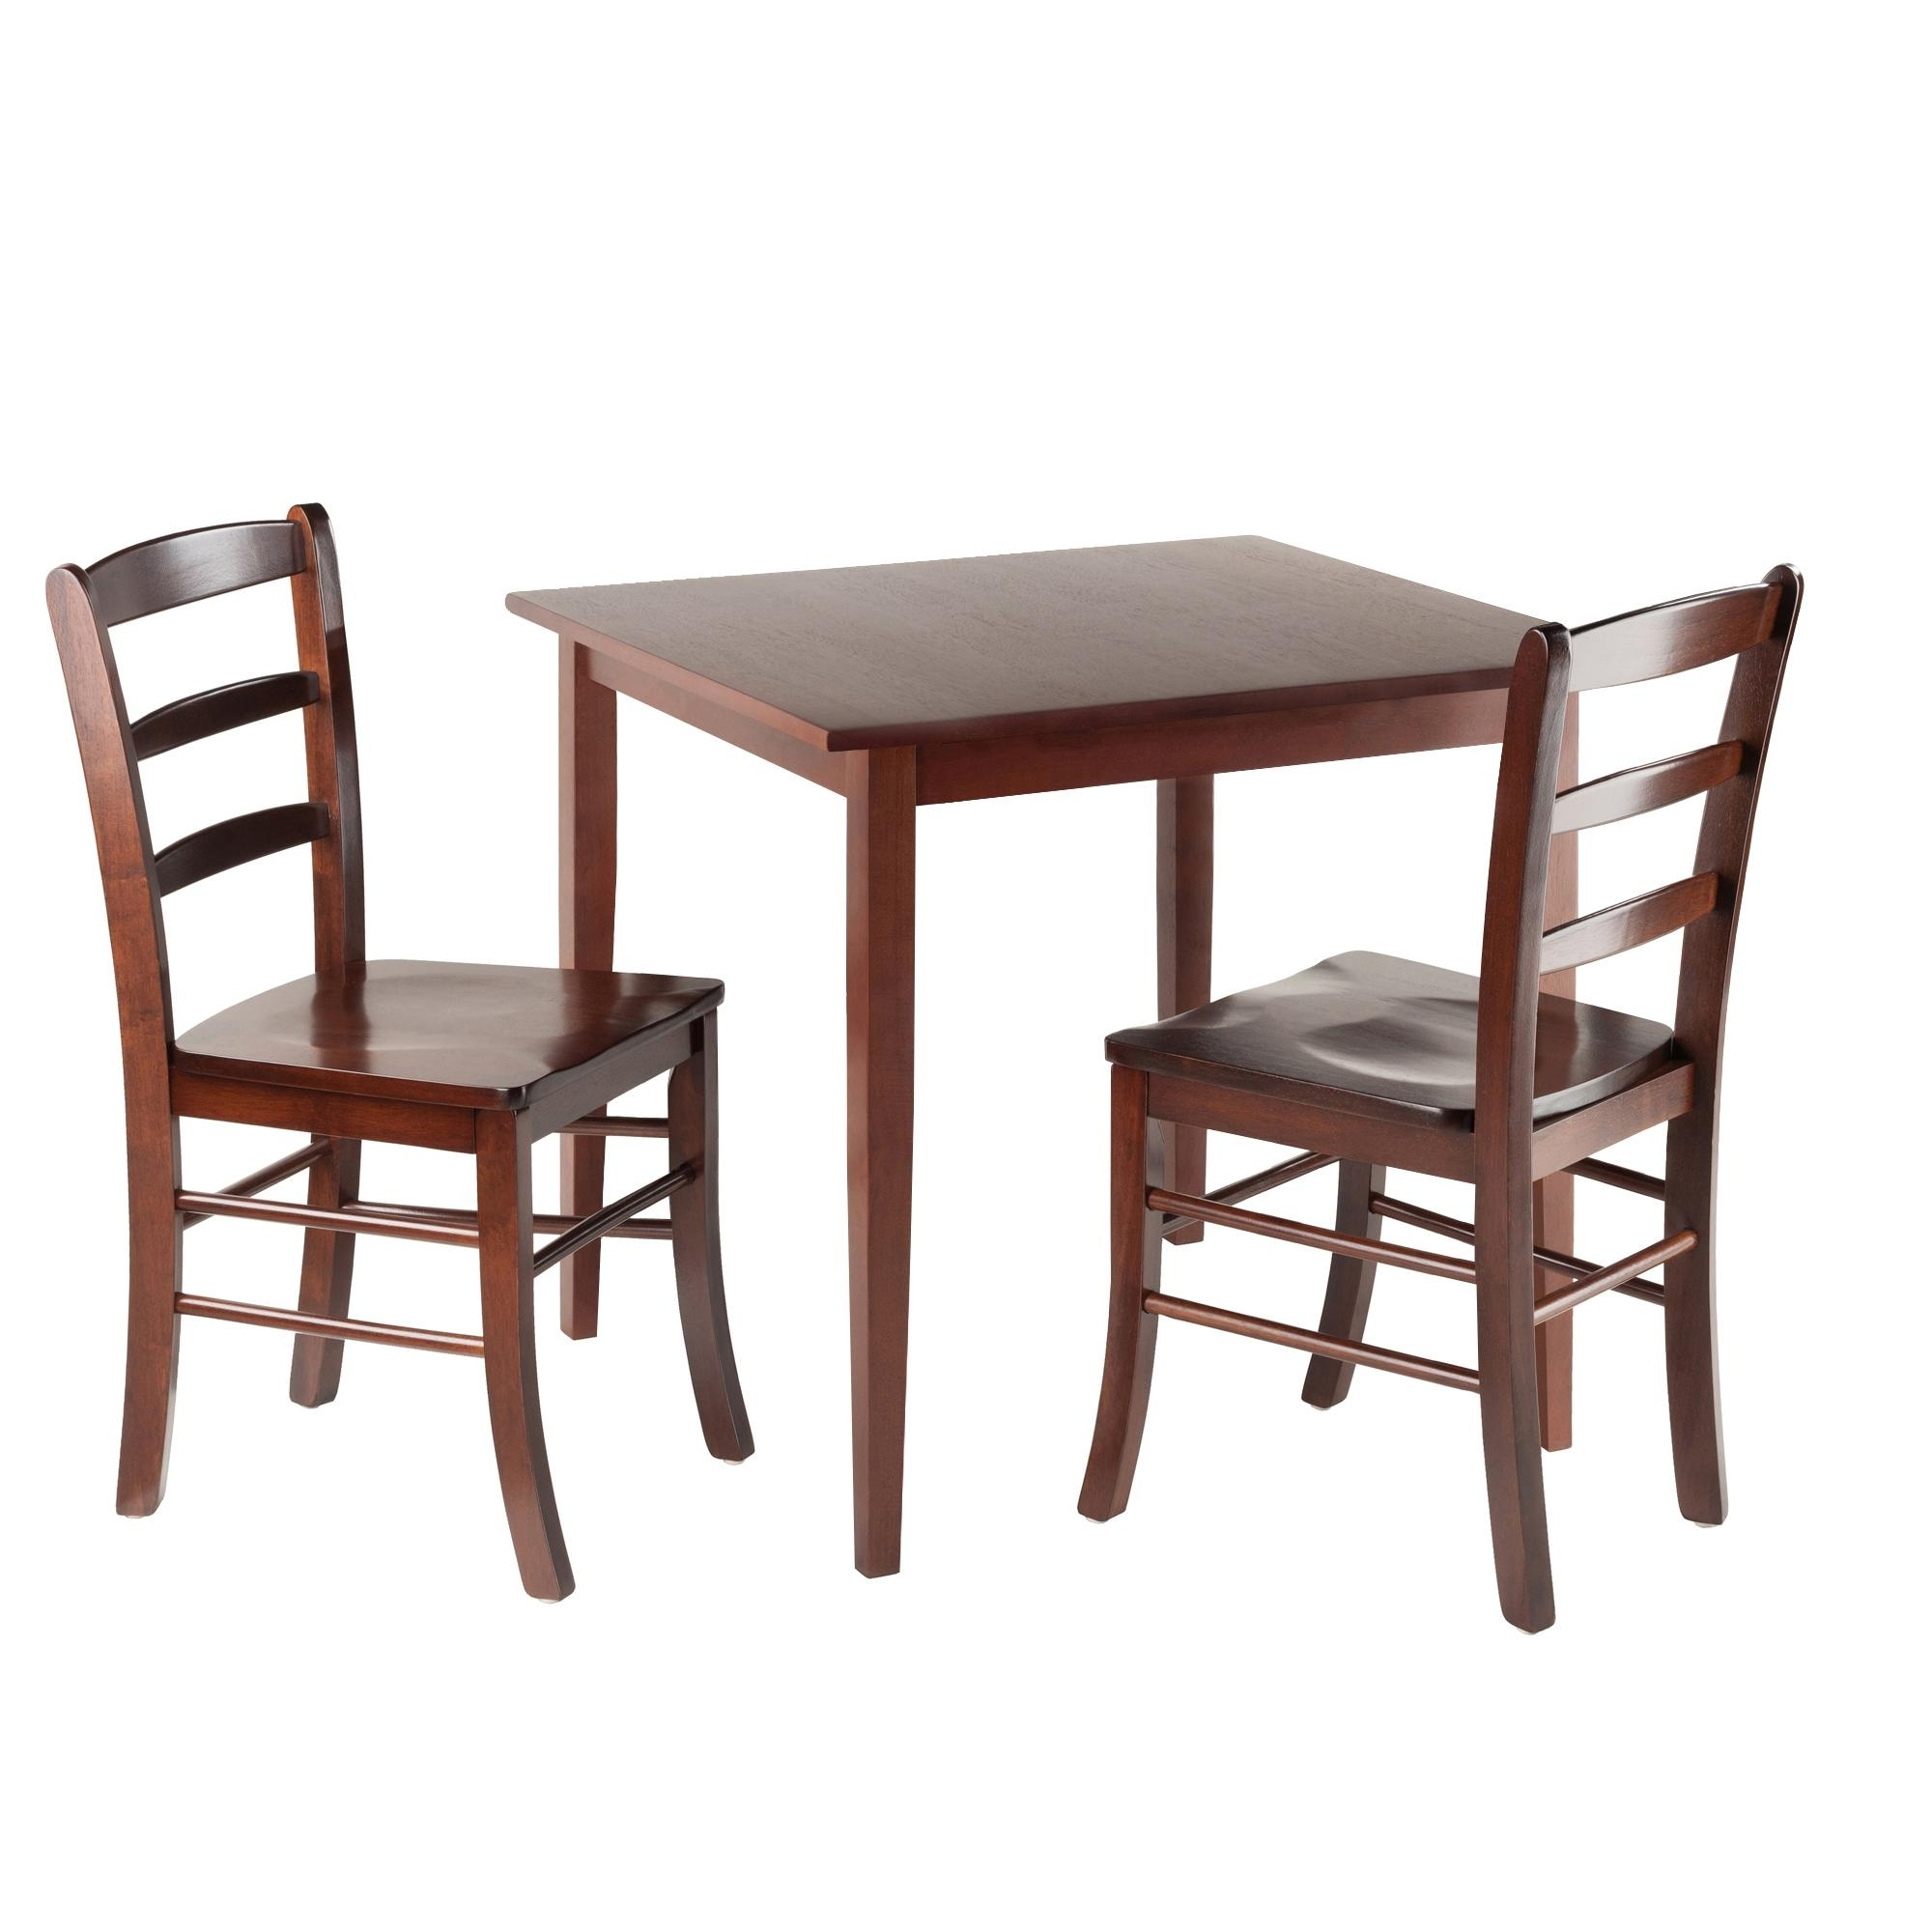 Amazon – Winsome Groveland Square Dining Table With 2 Chairs, 3 Regarding Most Recently Released Square Dining Tables (View 8 of 25)